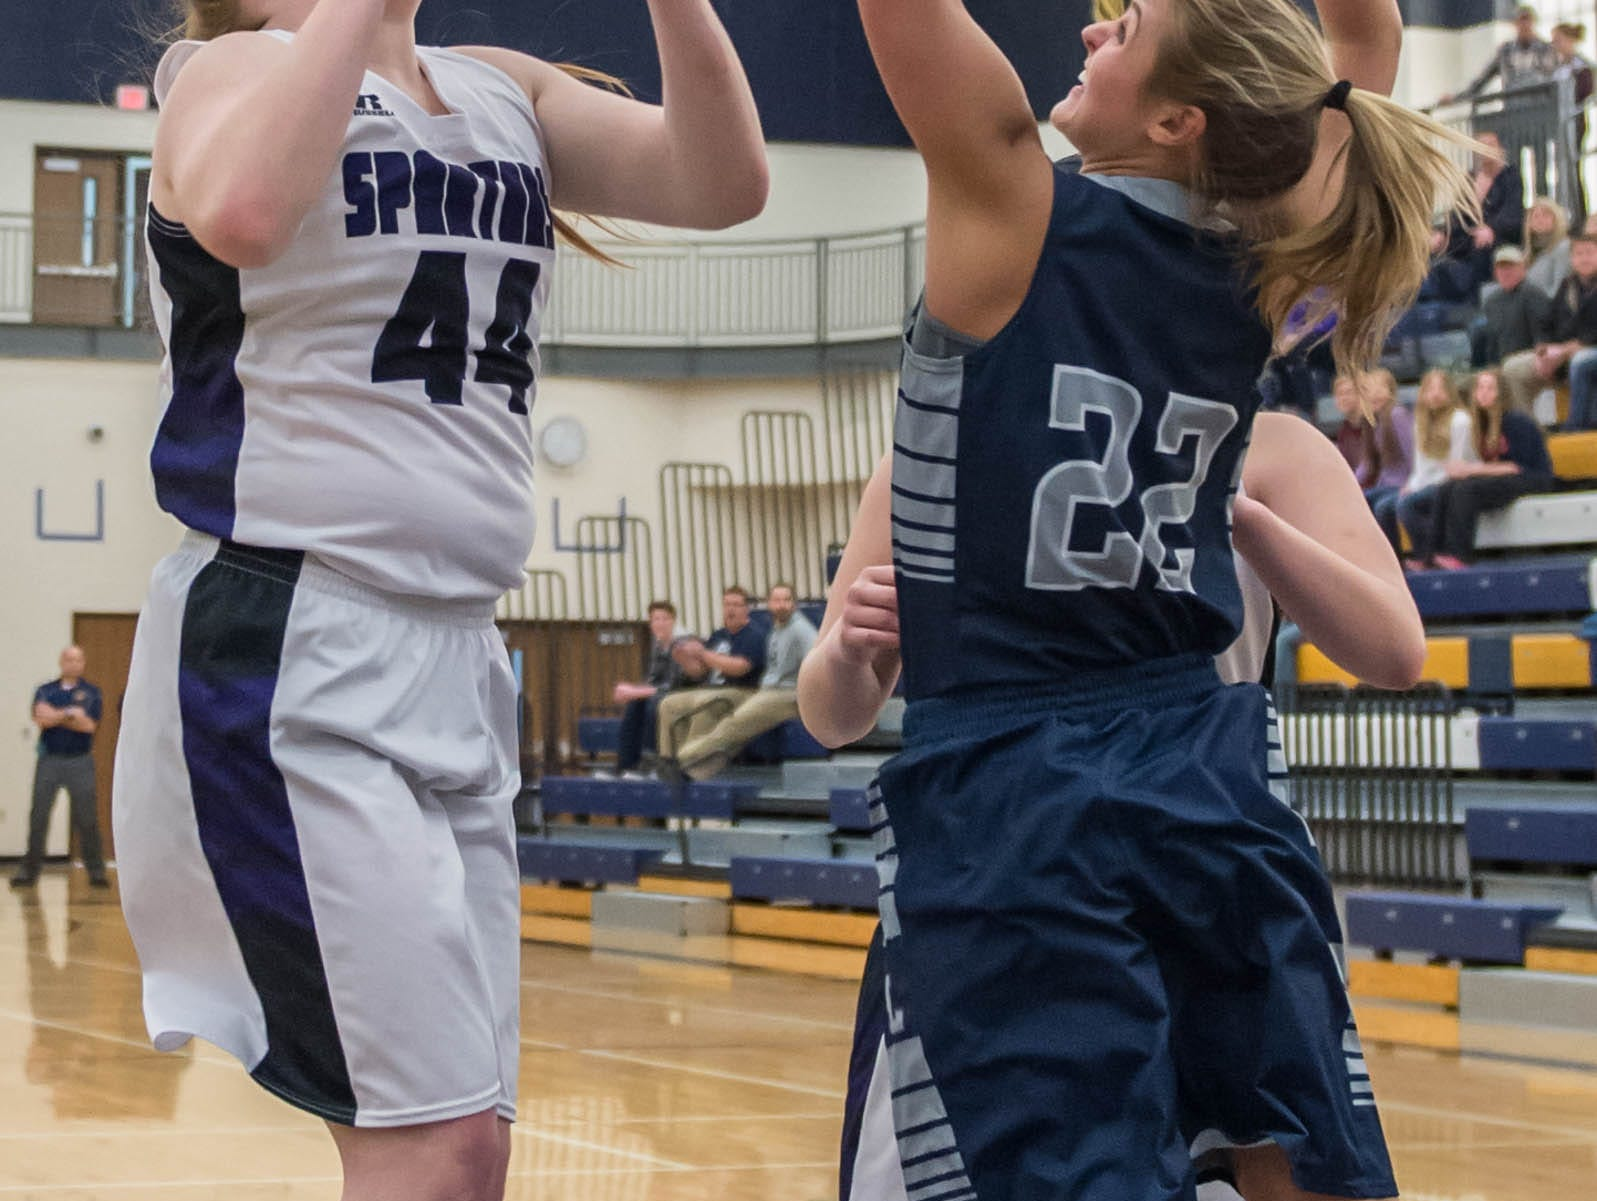 Lakeview's Emily Eldridge (44) goes for the hoop during a district game against Gull Lake Wednesday evening.